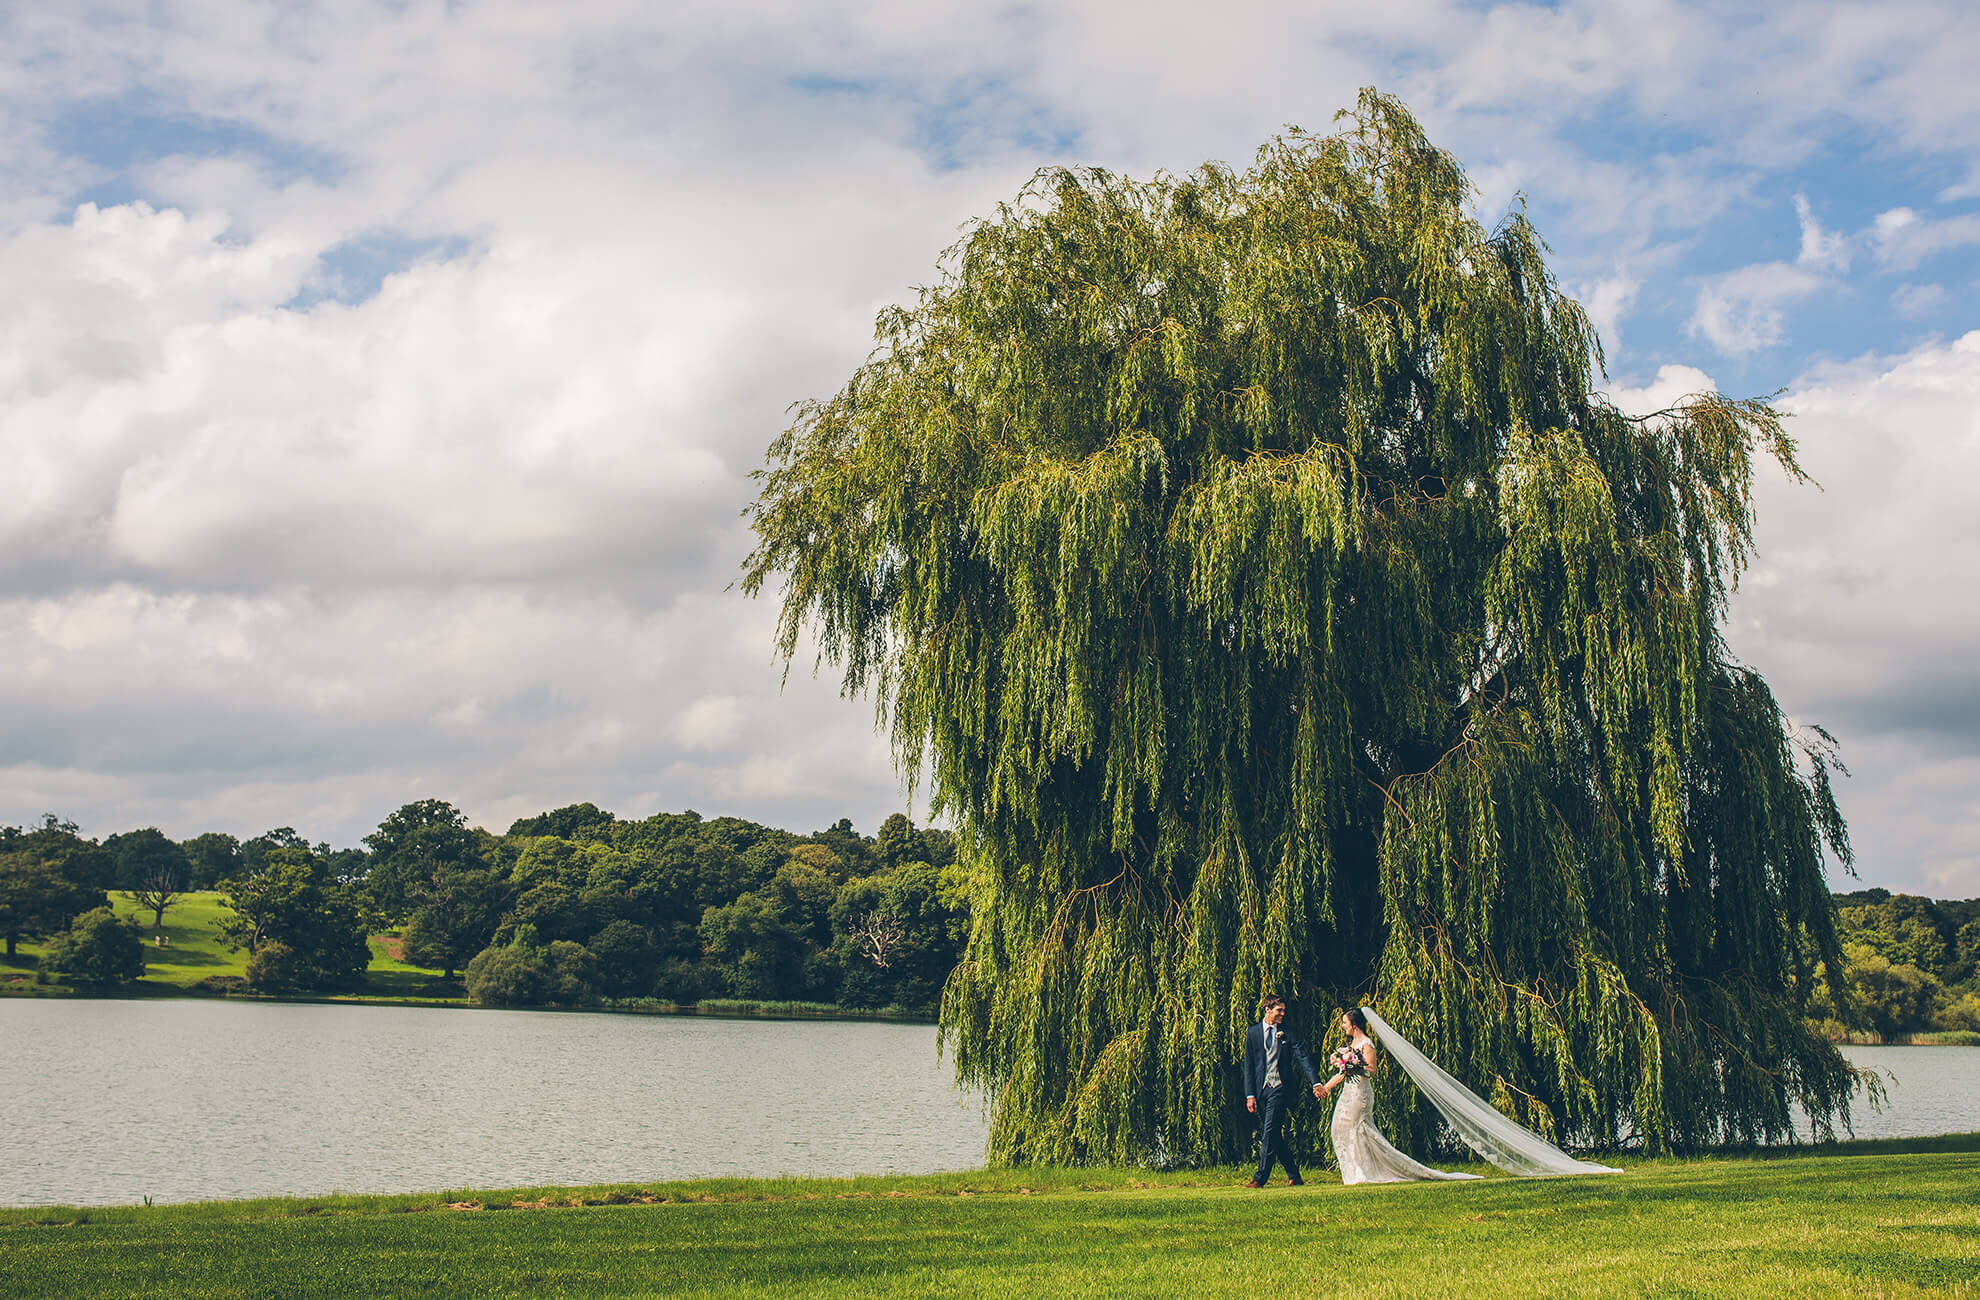 Newlyweds explore the grounds at this stunning lakeside wedding venue in Cheshire